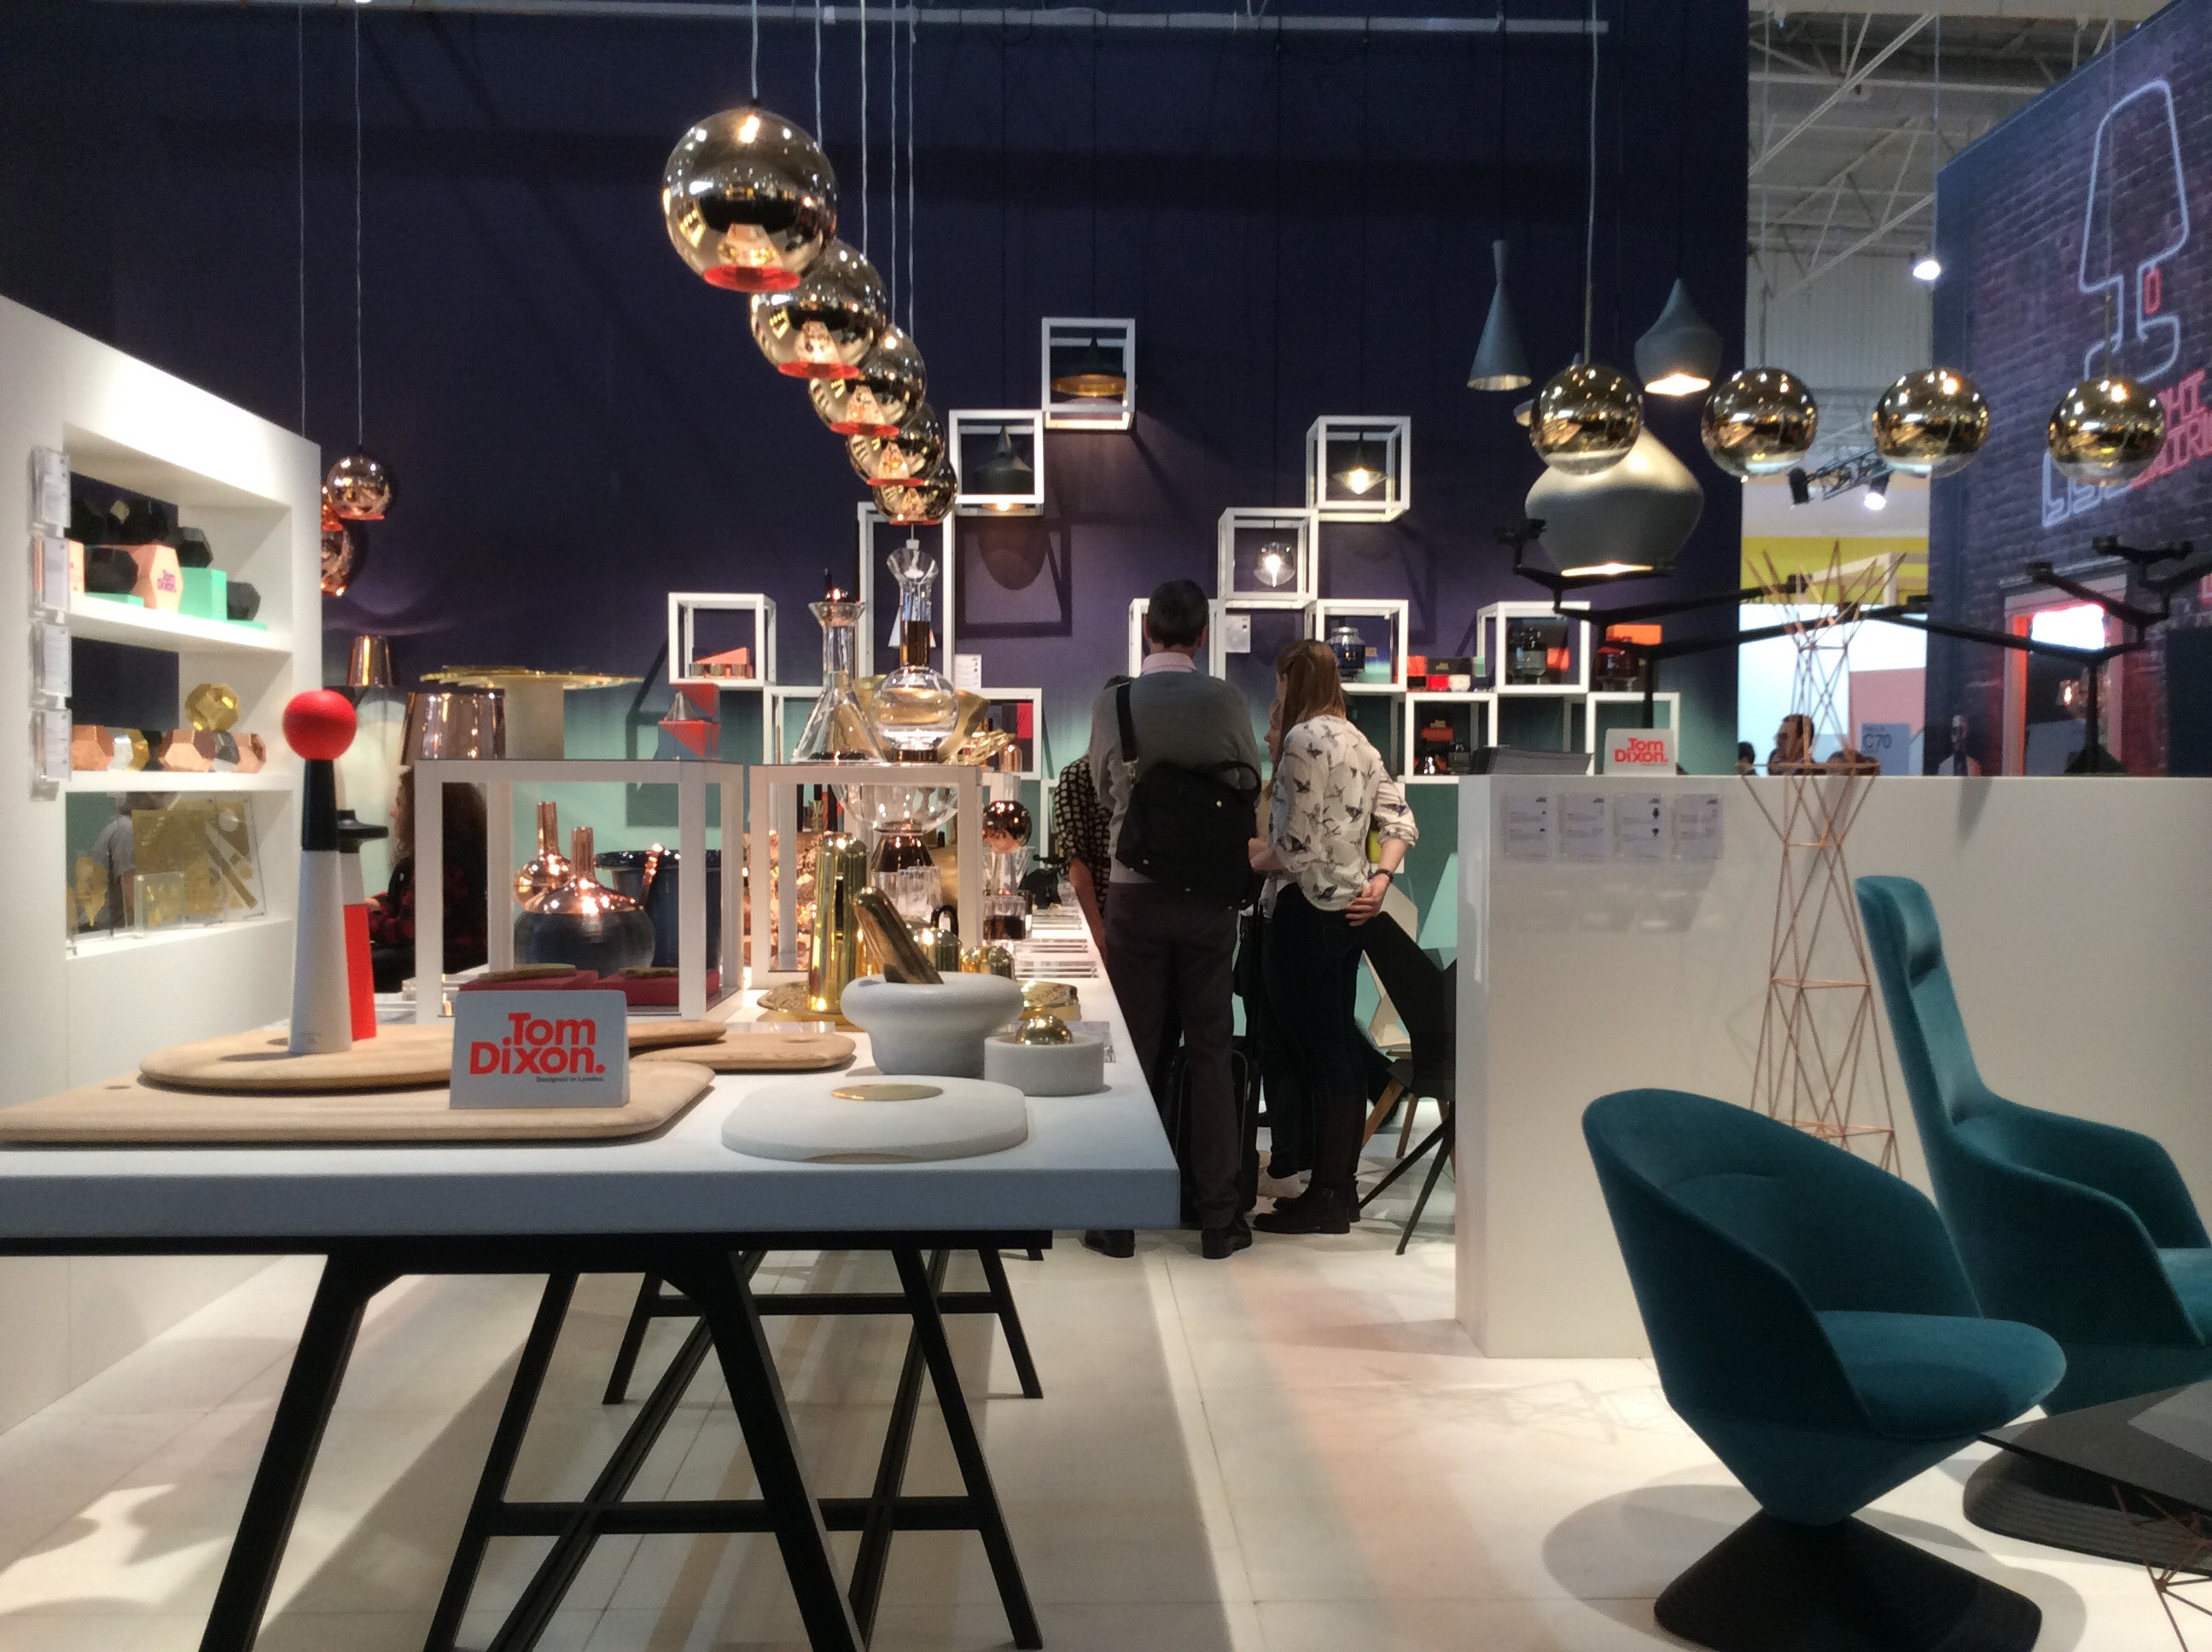 Are You Ready To See What Maison Et Objet 2019 Has To Offer You 2 maison et objet 2019 Are You Ready To See What Maison Et Objet 2019 Has To Offer You? Are You Ready To See What Maison Et Objet 2019 Has To Offer You 2